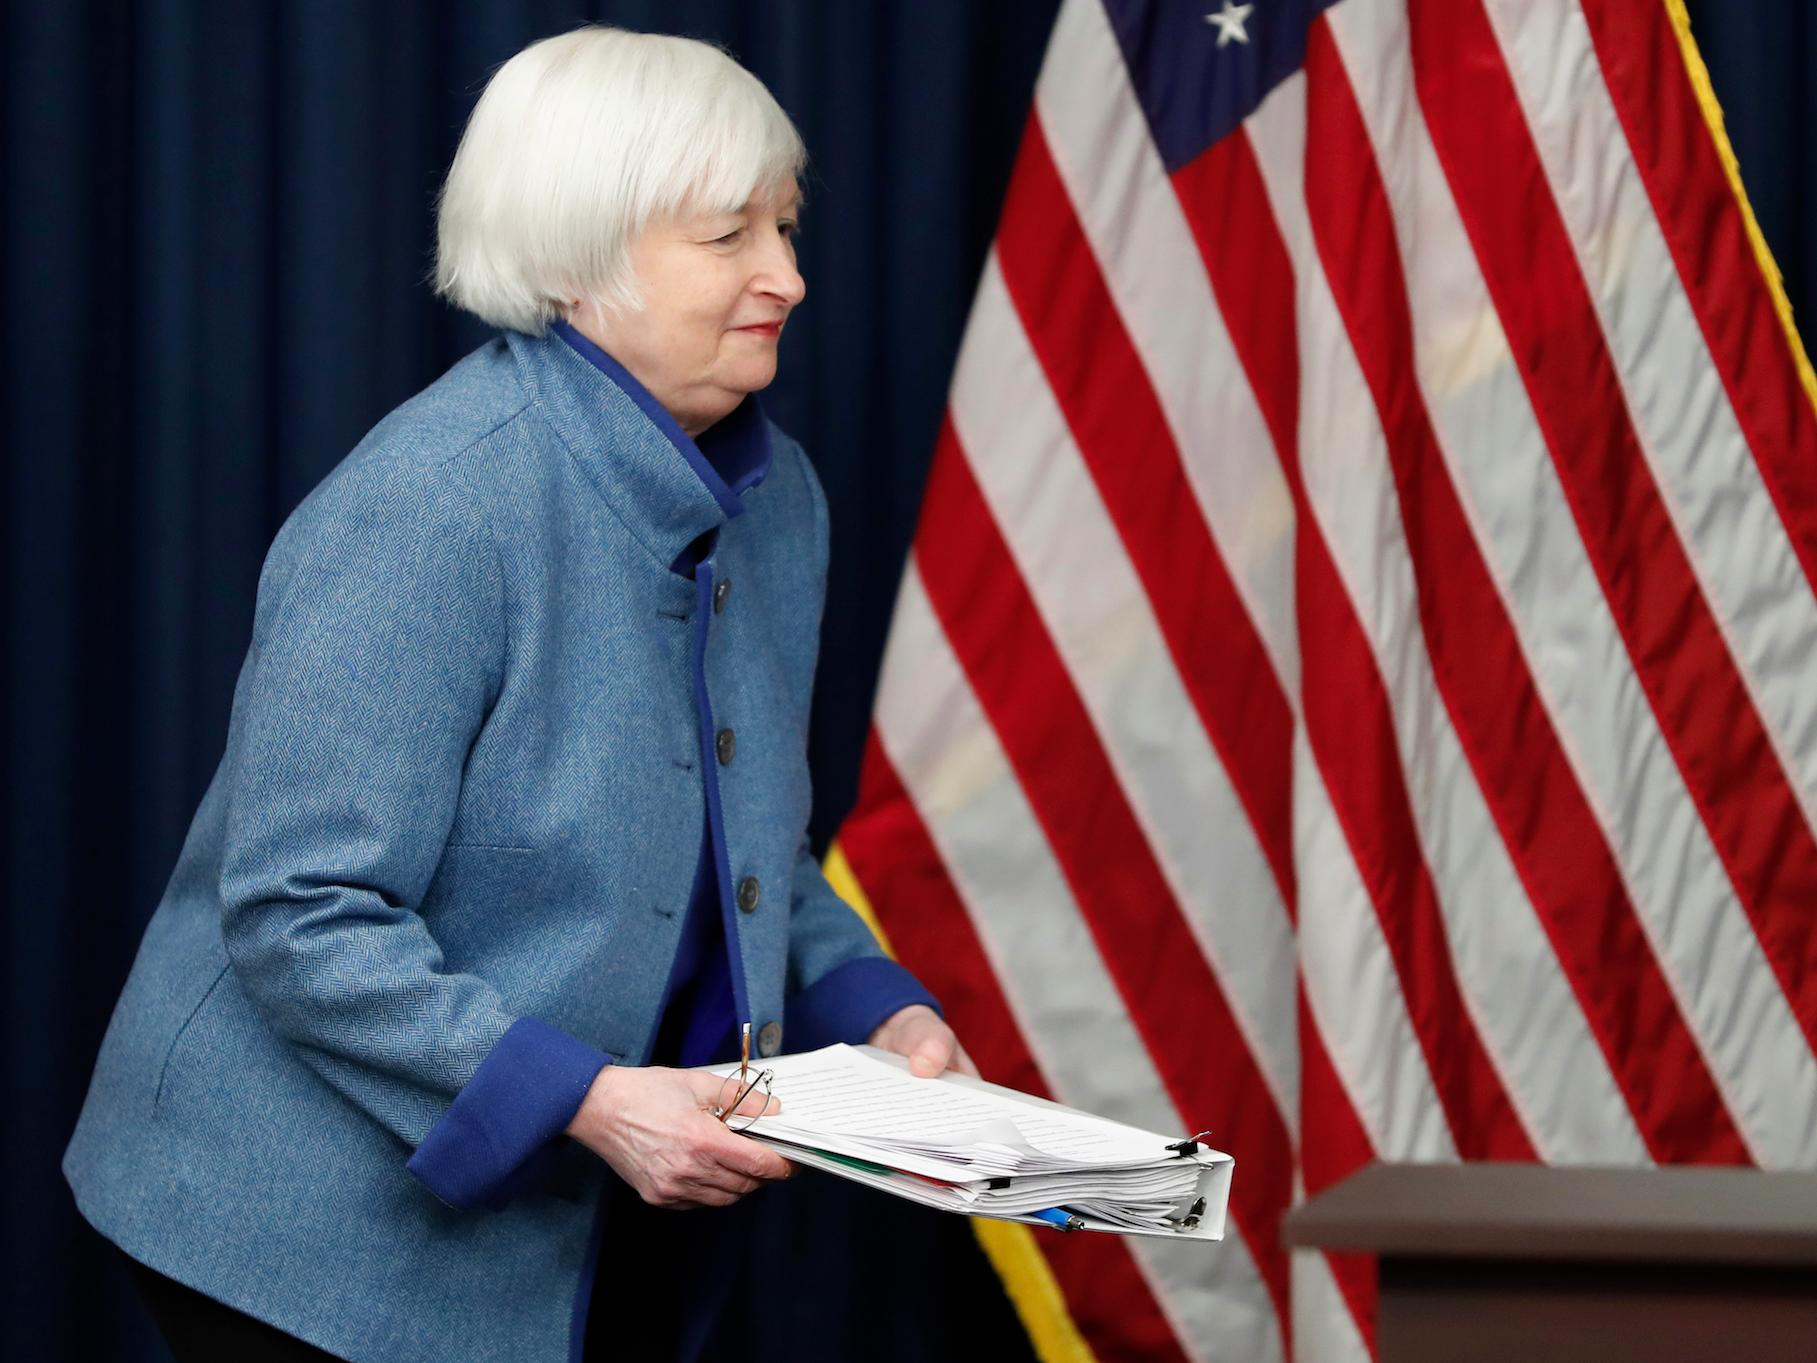 YELLEN: The Fed is close to its goals and expects to hike rates 'a few' times this year